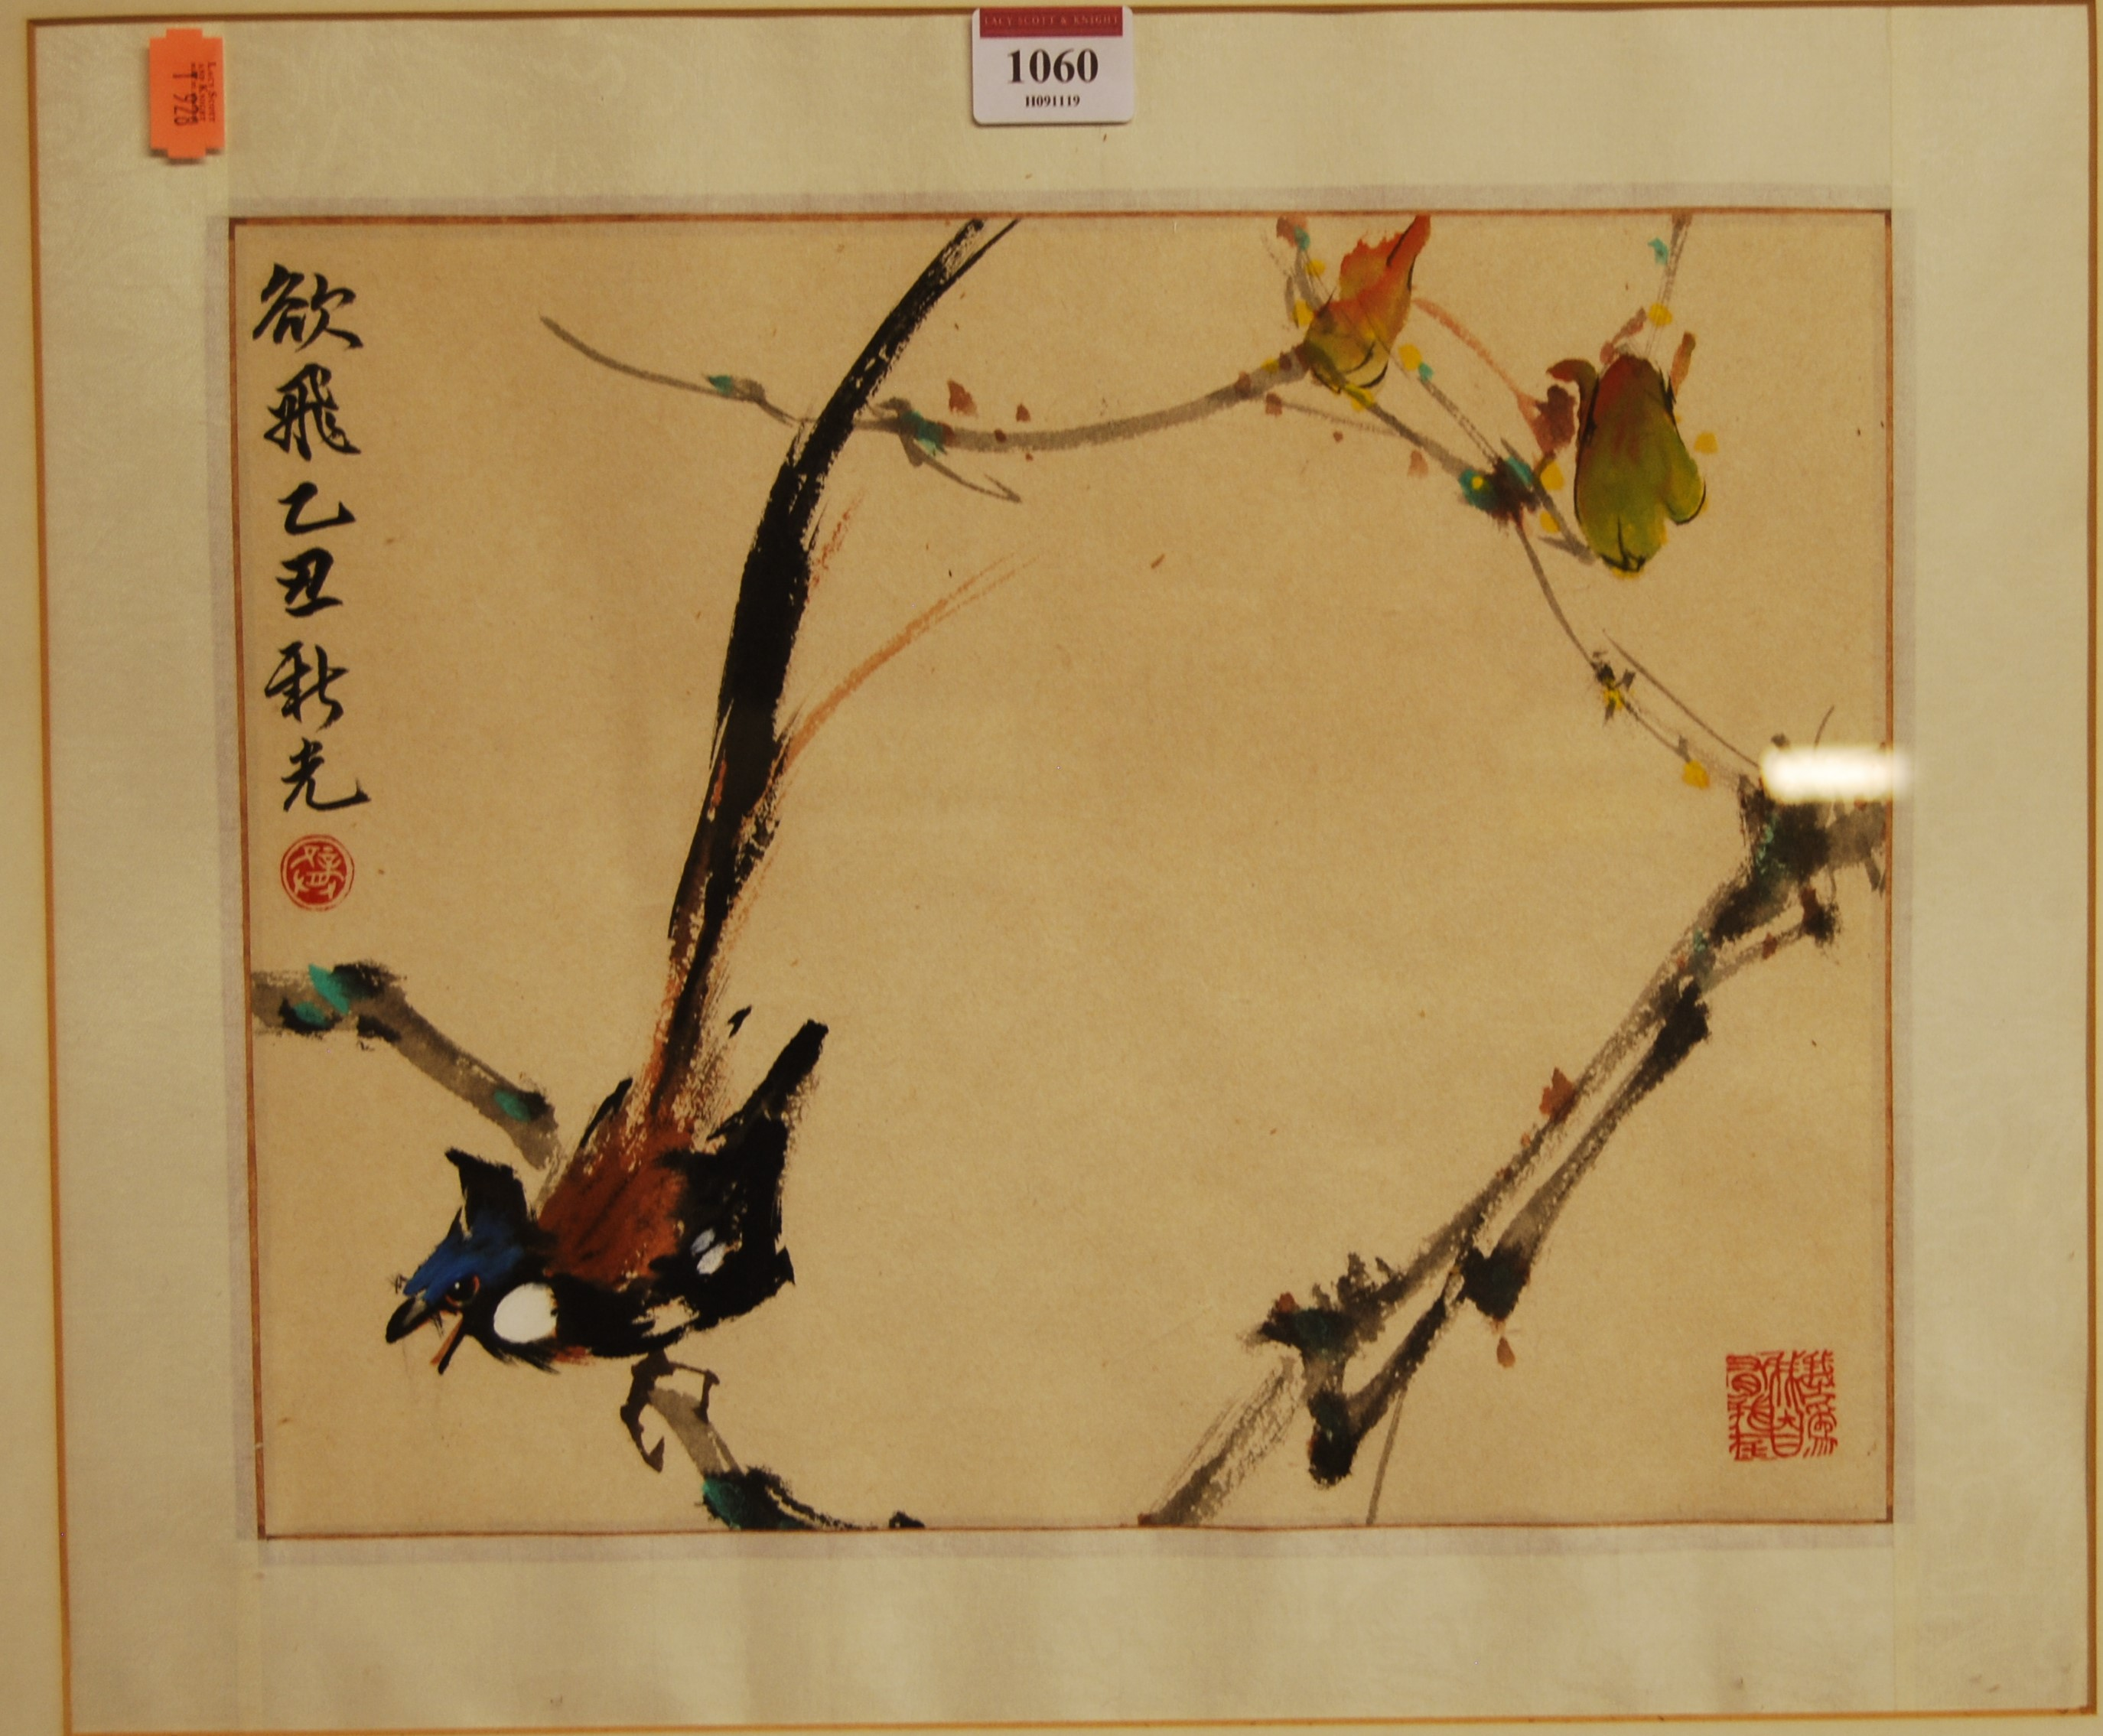 Lot 1060 - A Japanese screenprint depicting bird upon a branch, with studio stamps and silk margin, 26 x 32cm